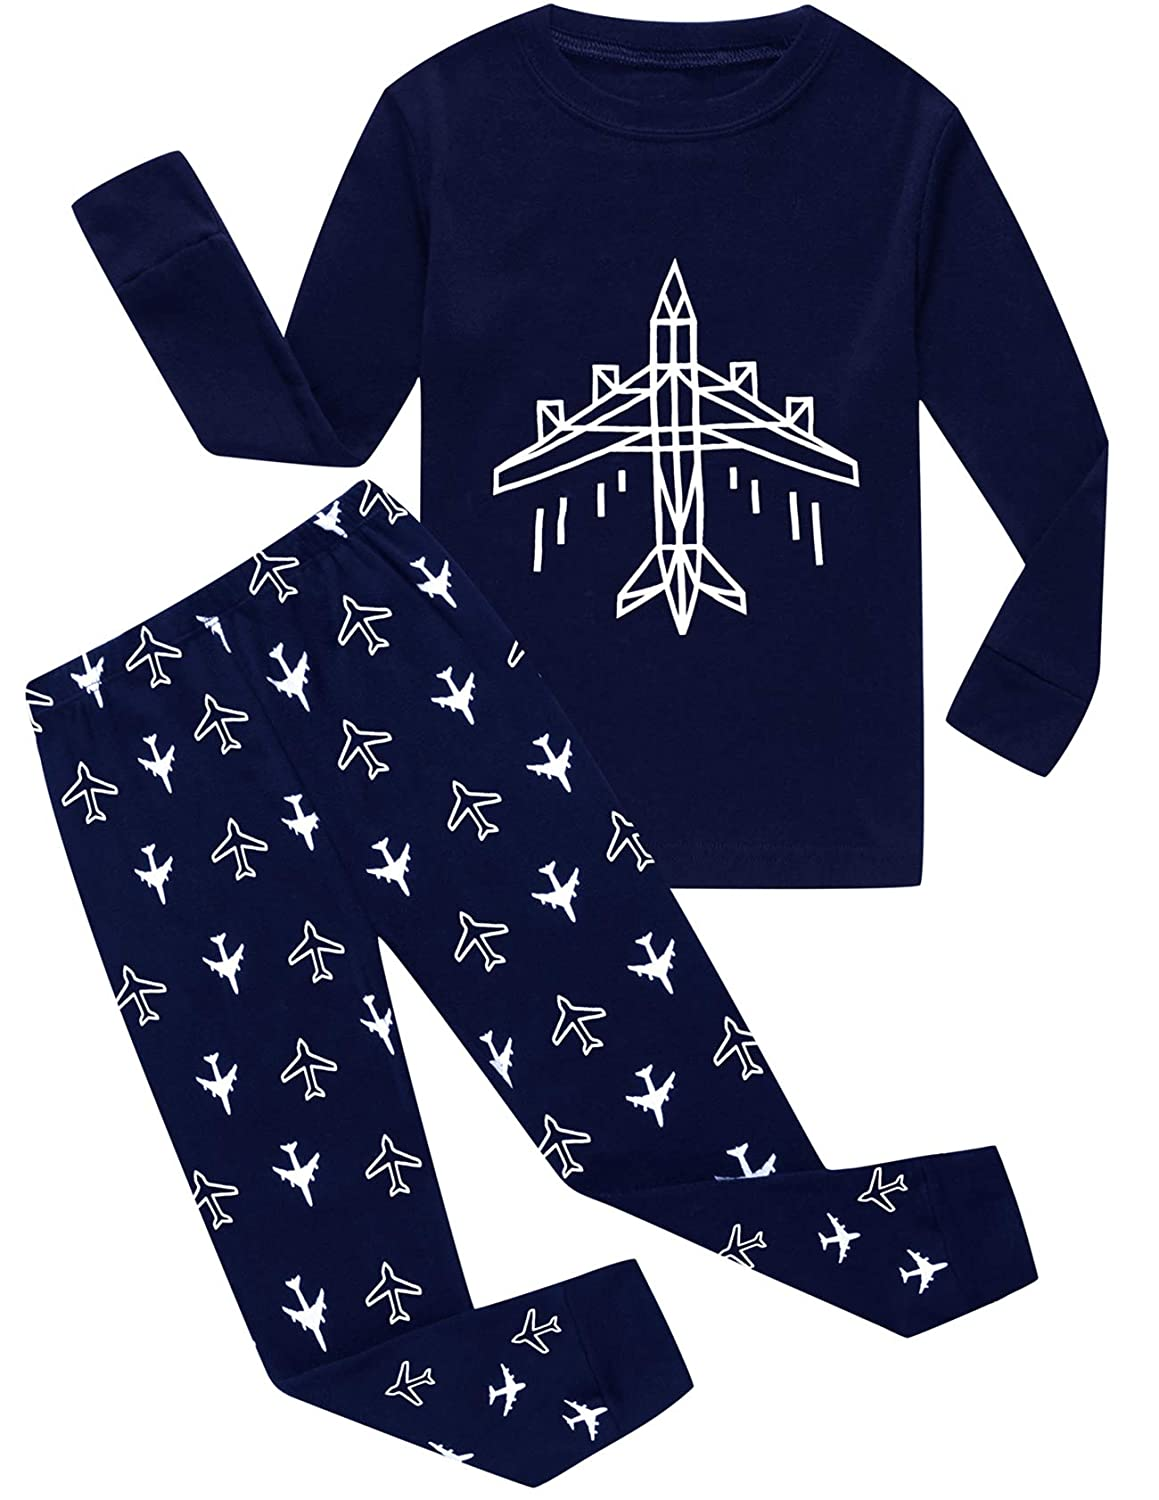 Little Pajamas Boys PJS Airplane Toddler Clothes 100% Cotton Kids Sleepwear Set 66Plane